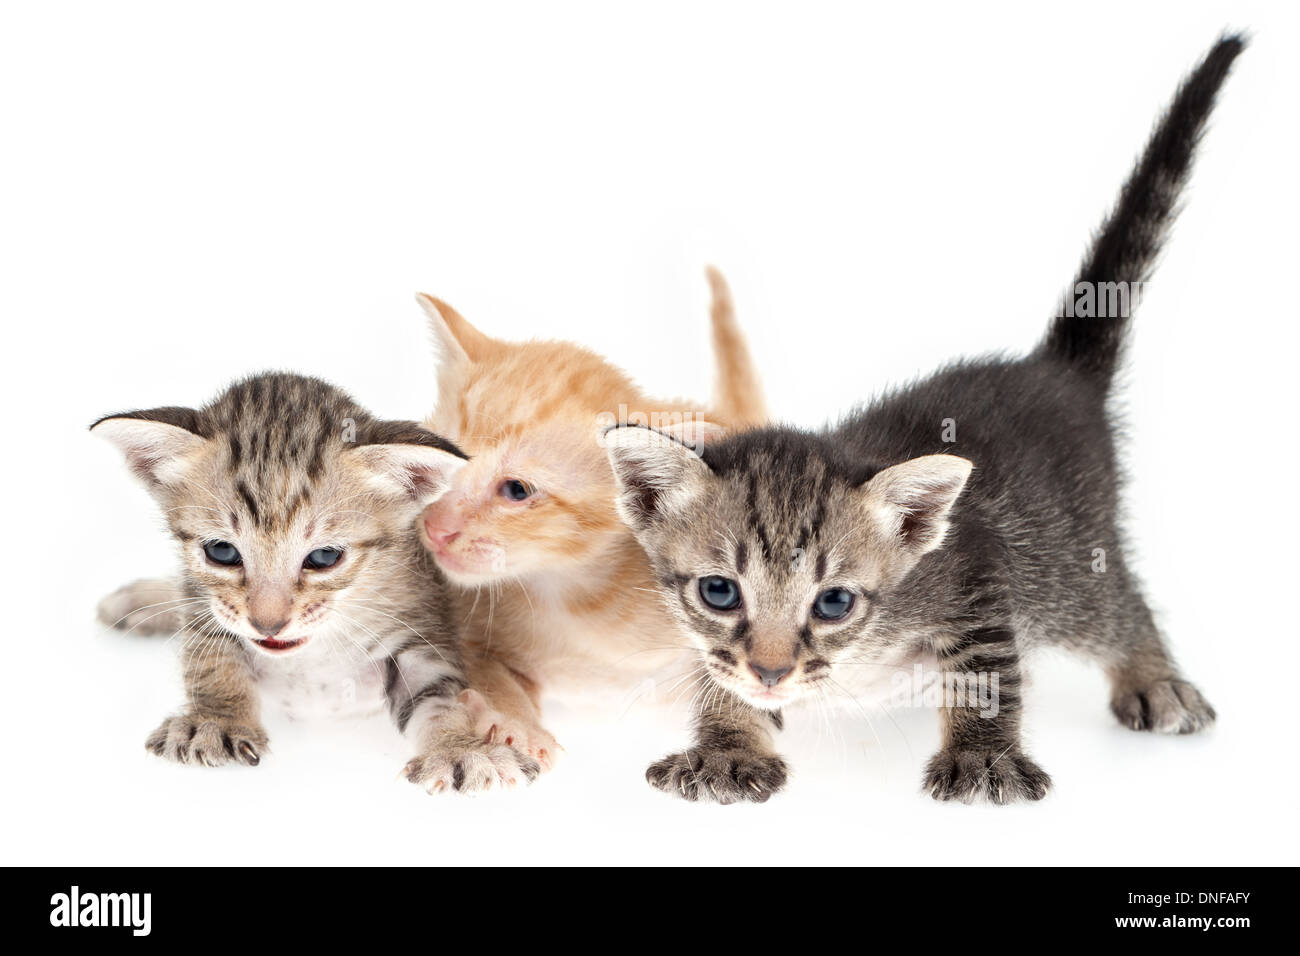 Cute kittens together on white background - Stock Image